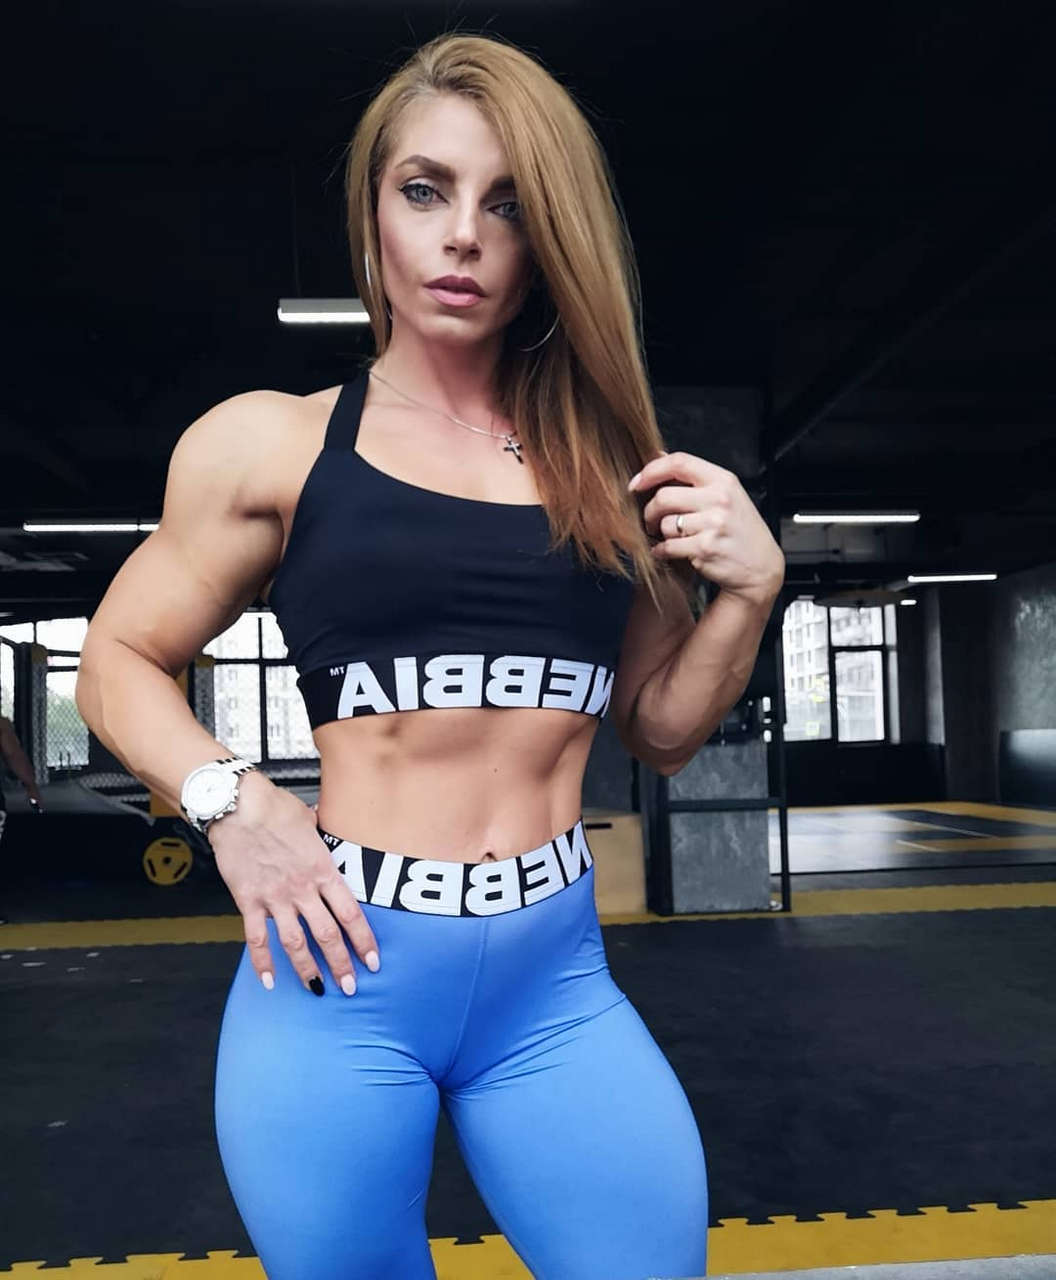 Yana Troshina Muscle